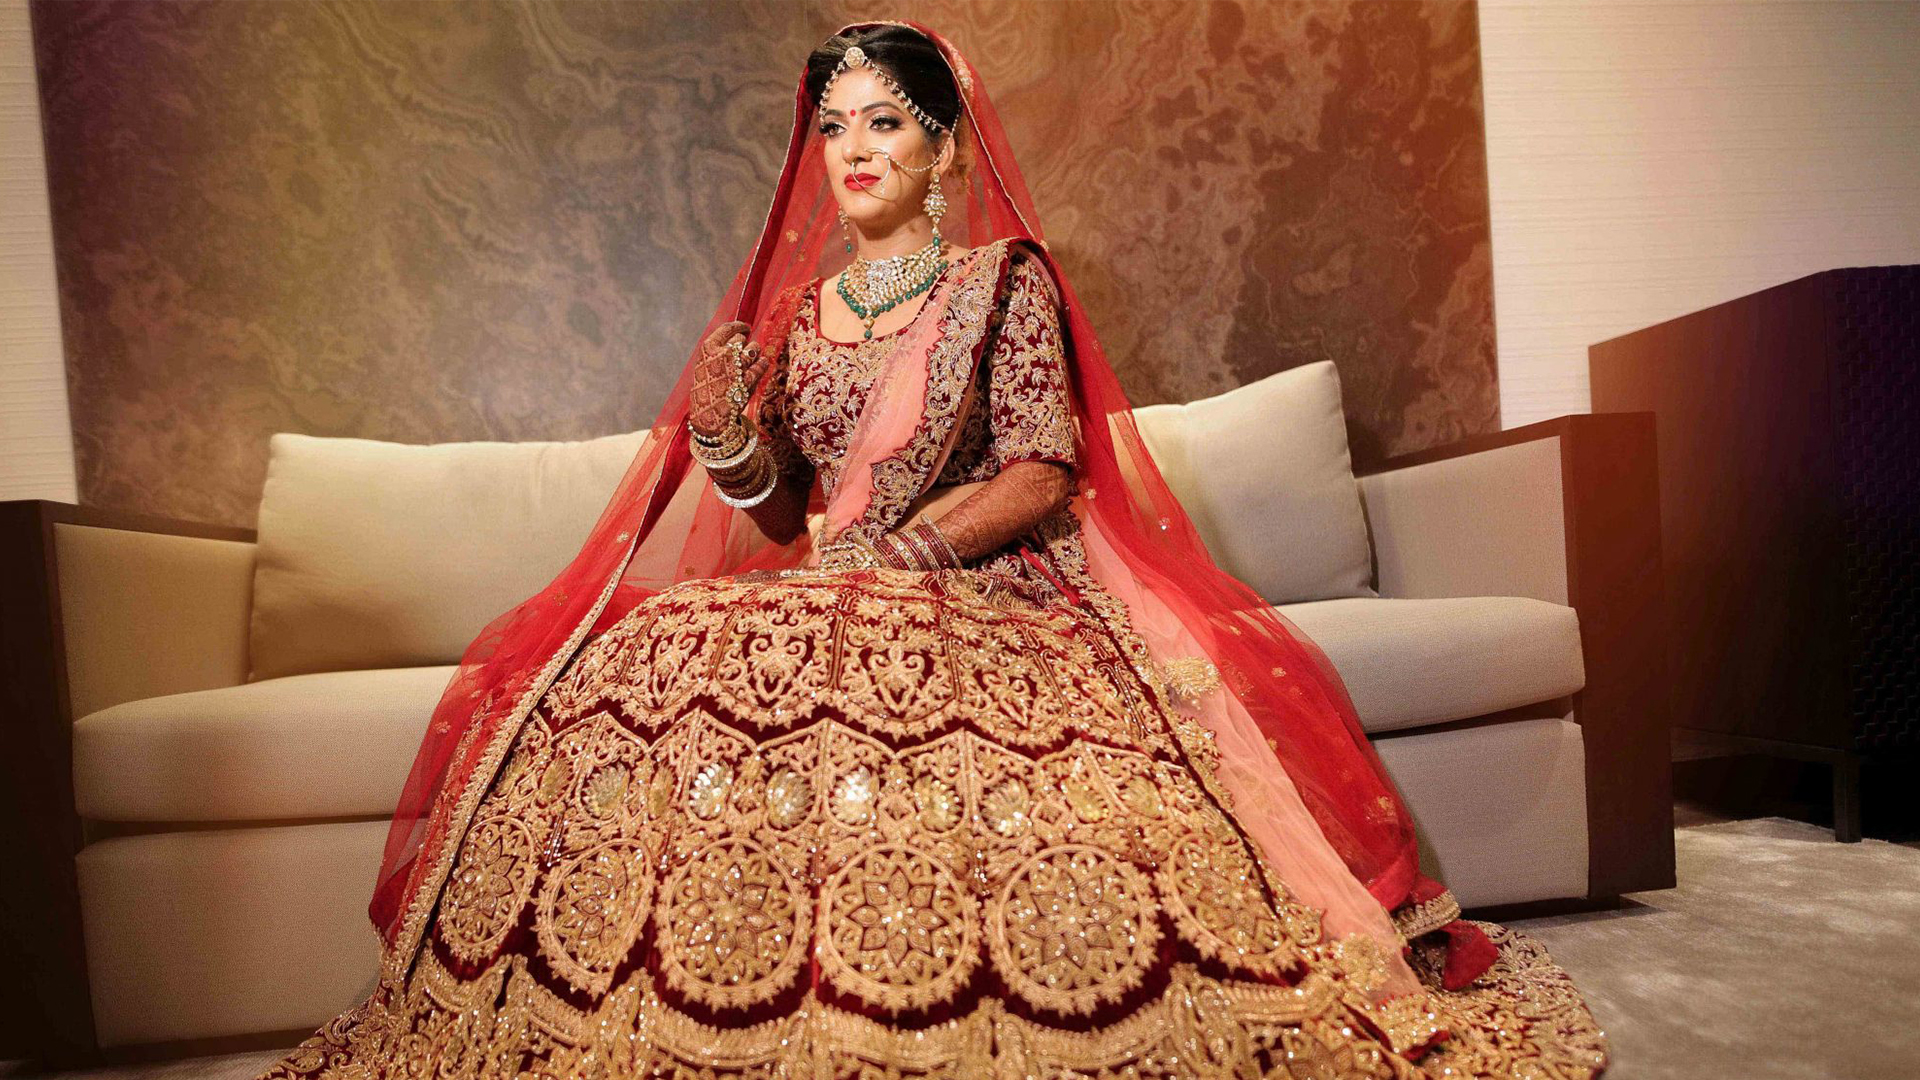 A Bride needs to know about beauty and fashion